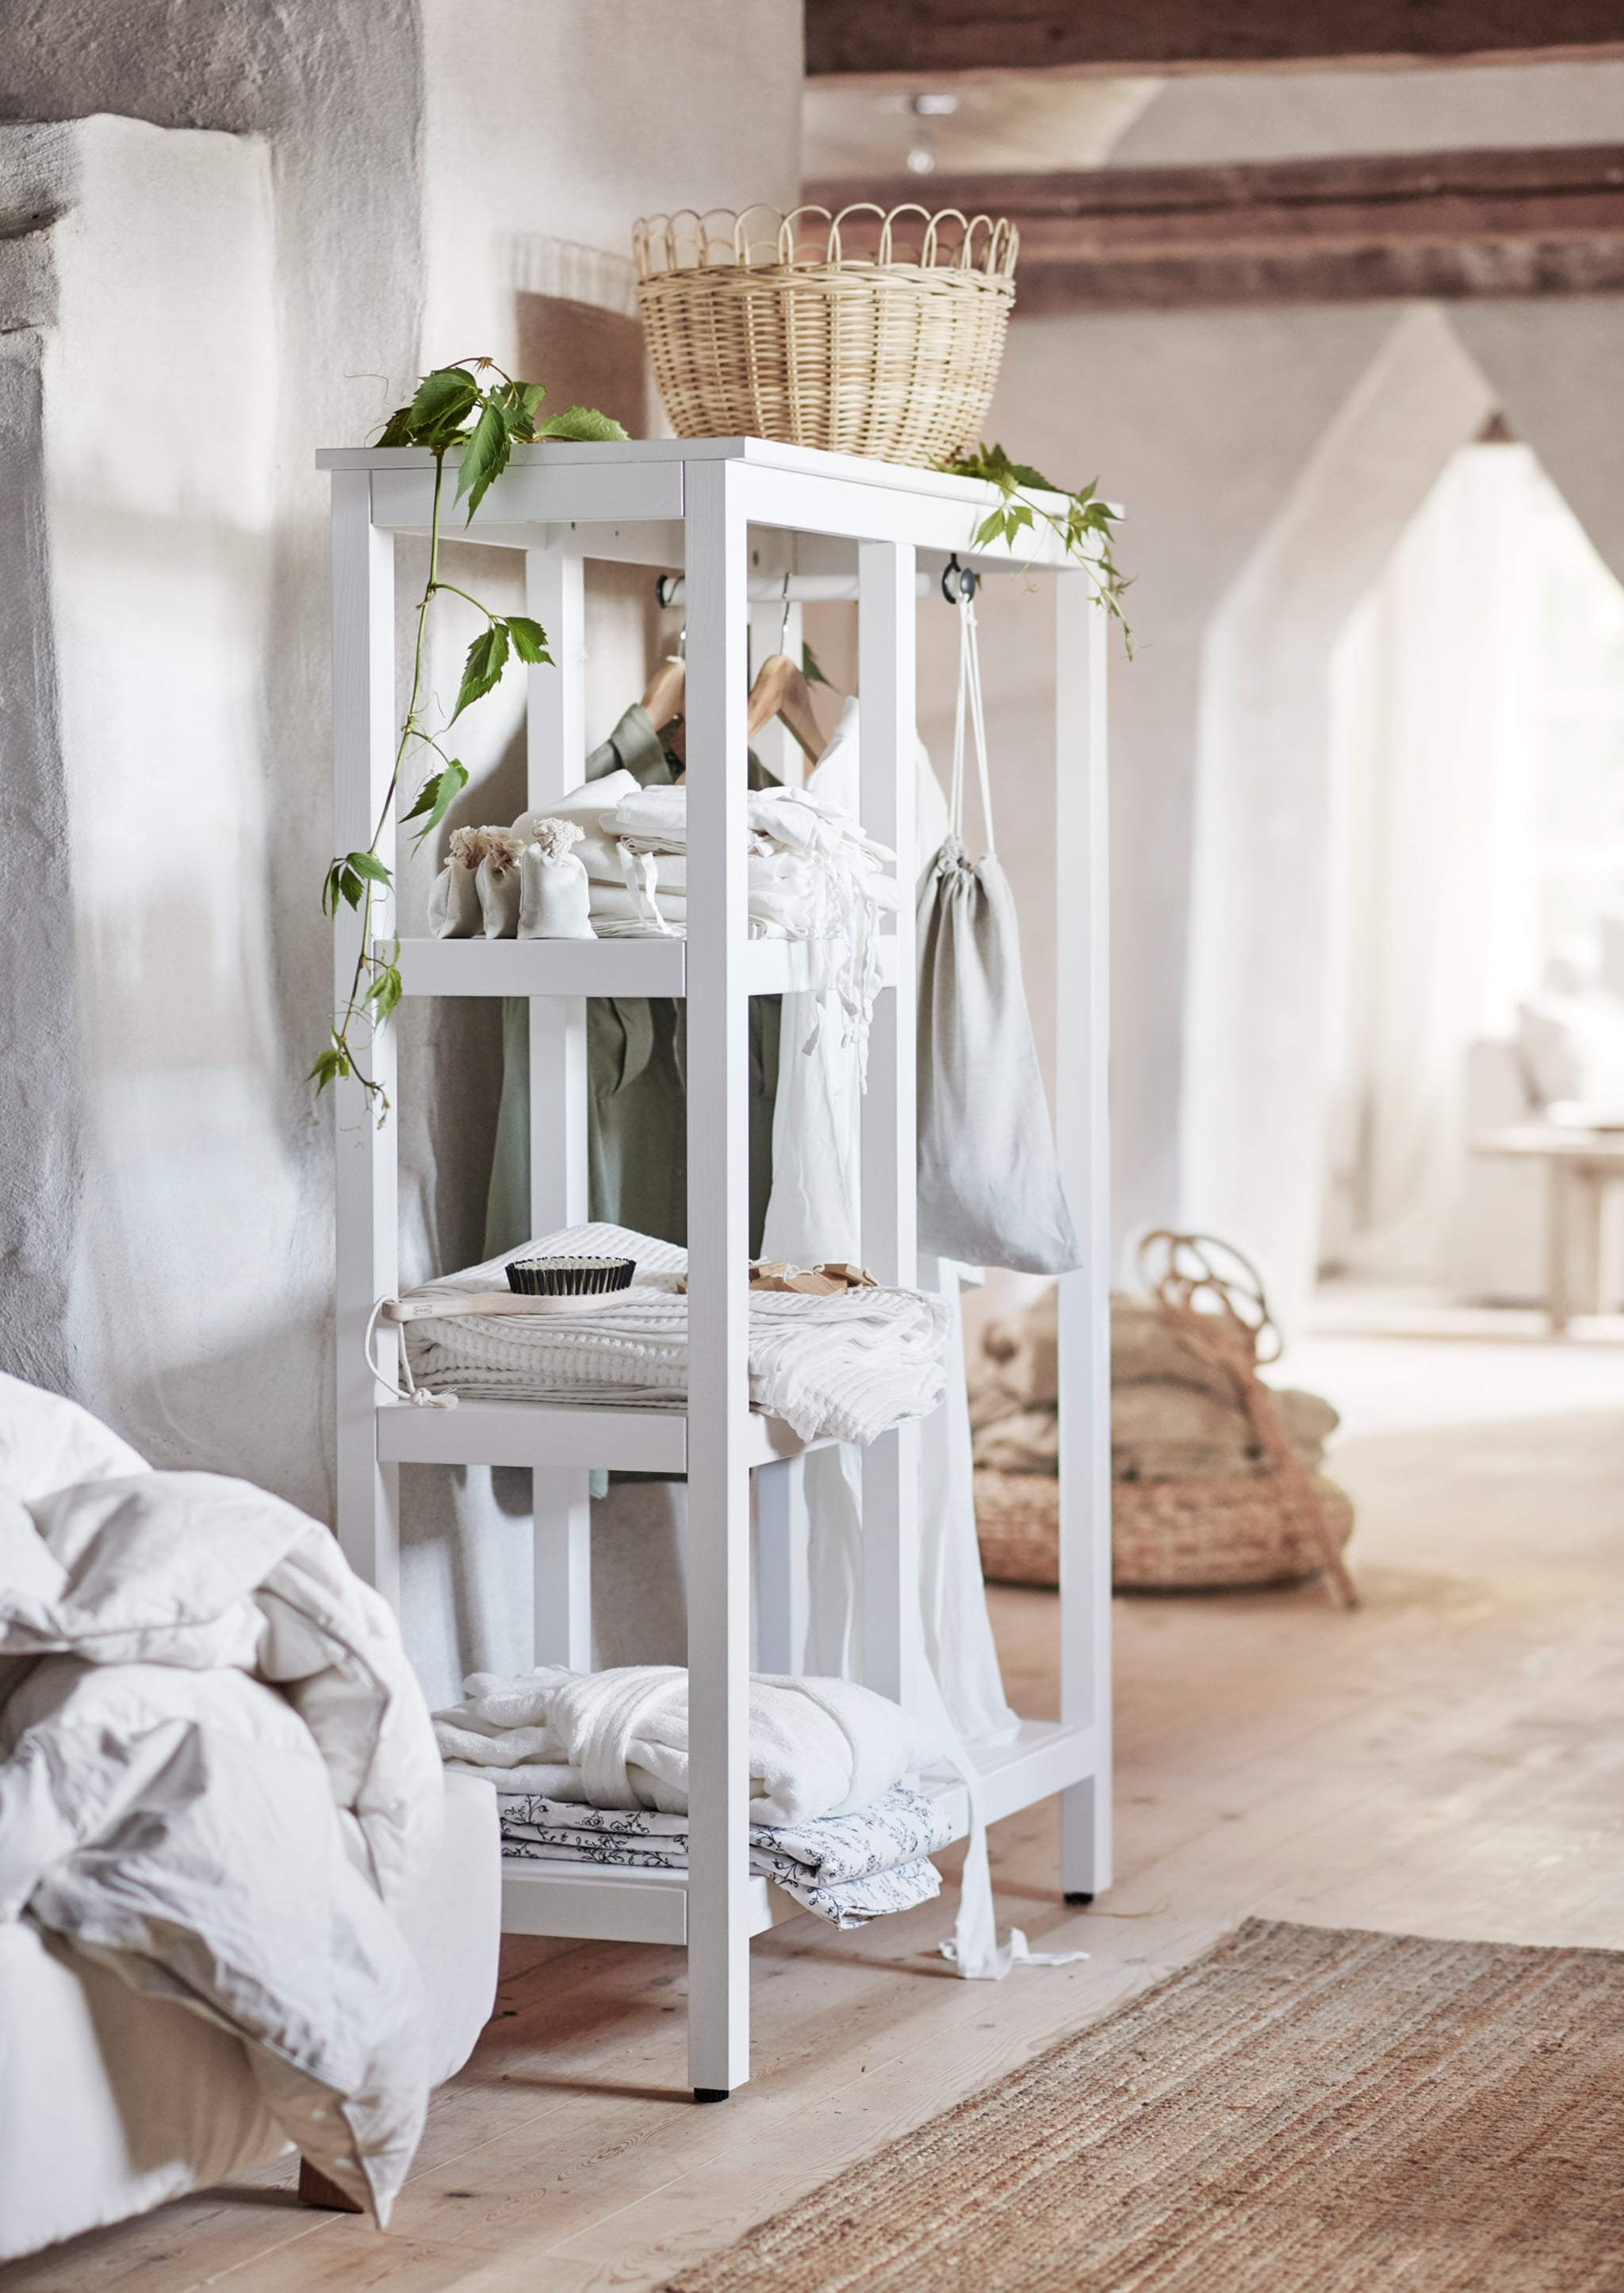 A traditional rattan basket sits on top of a white-stained open wardrobe.